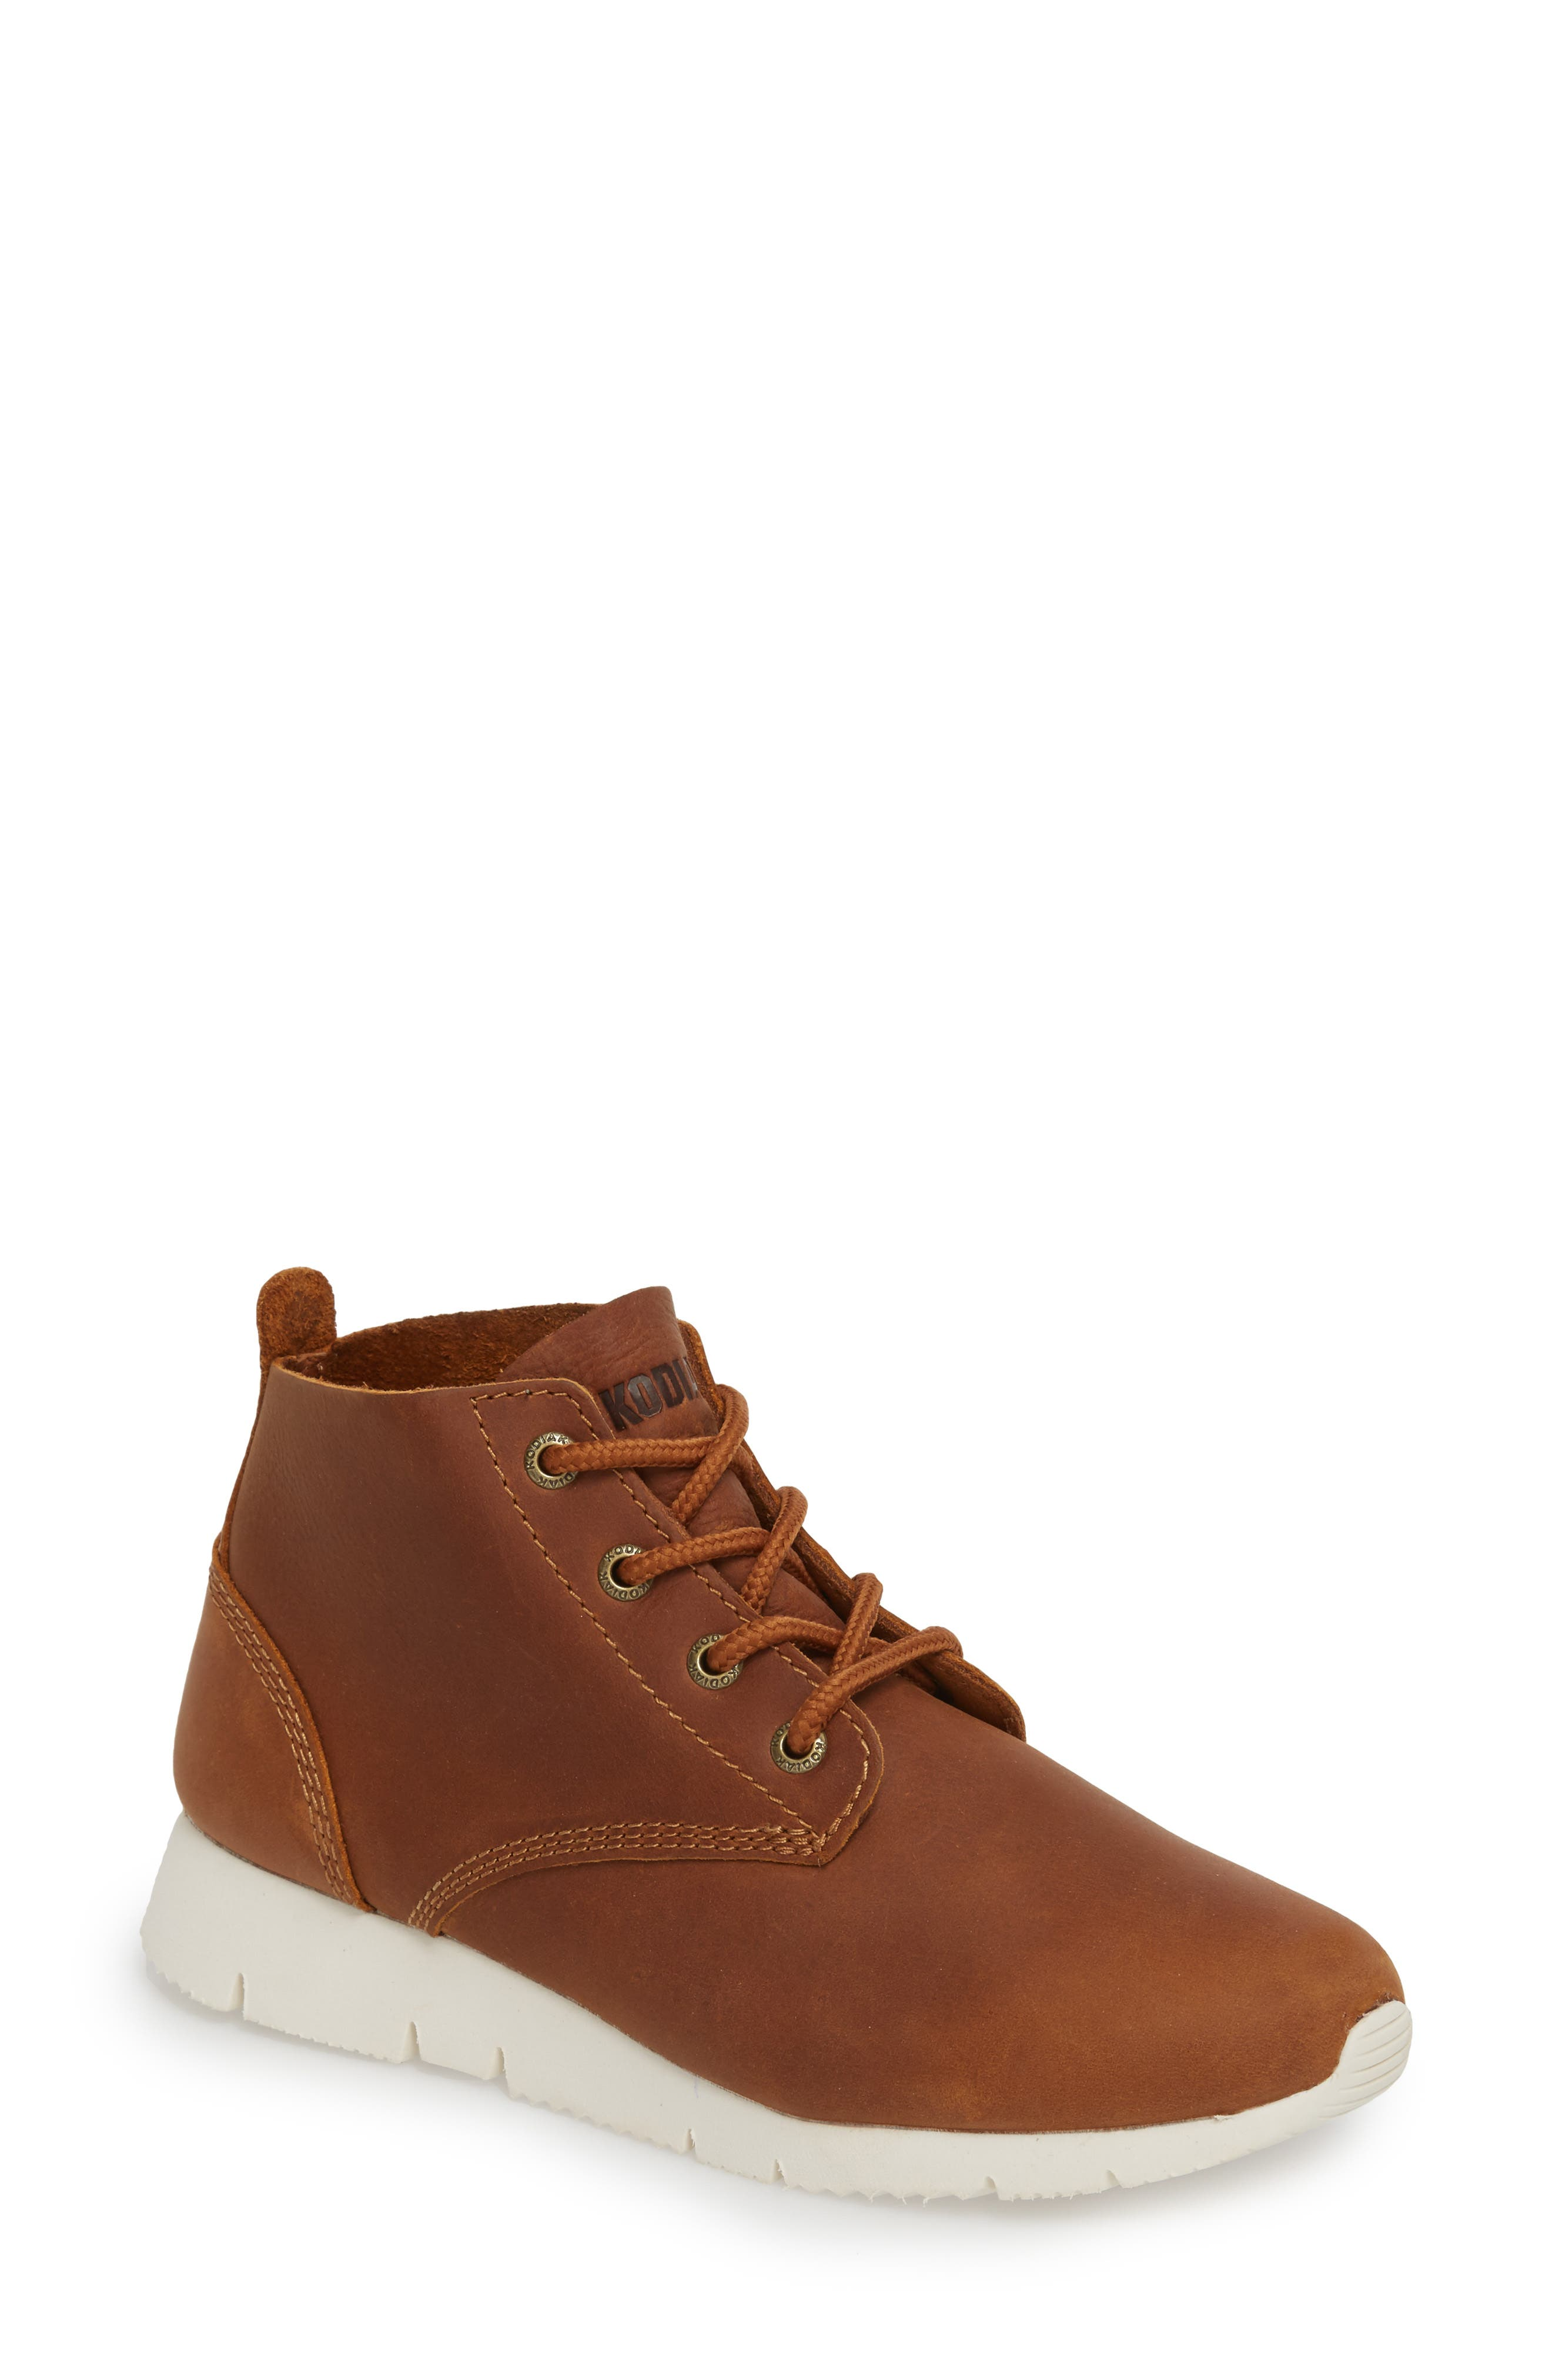 Chukka Boot,                             Main thumbnail 1, color,                             Peanut Leather